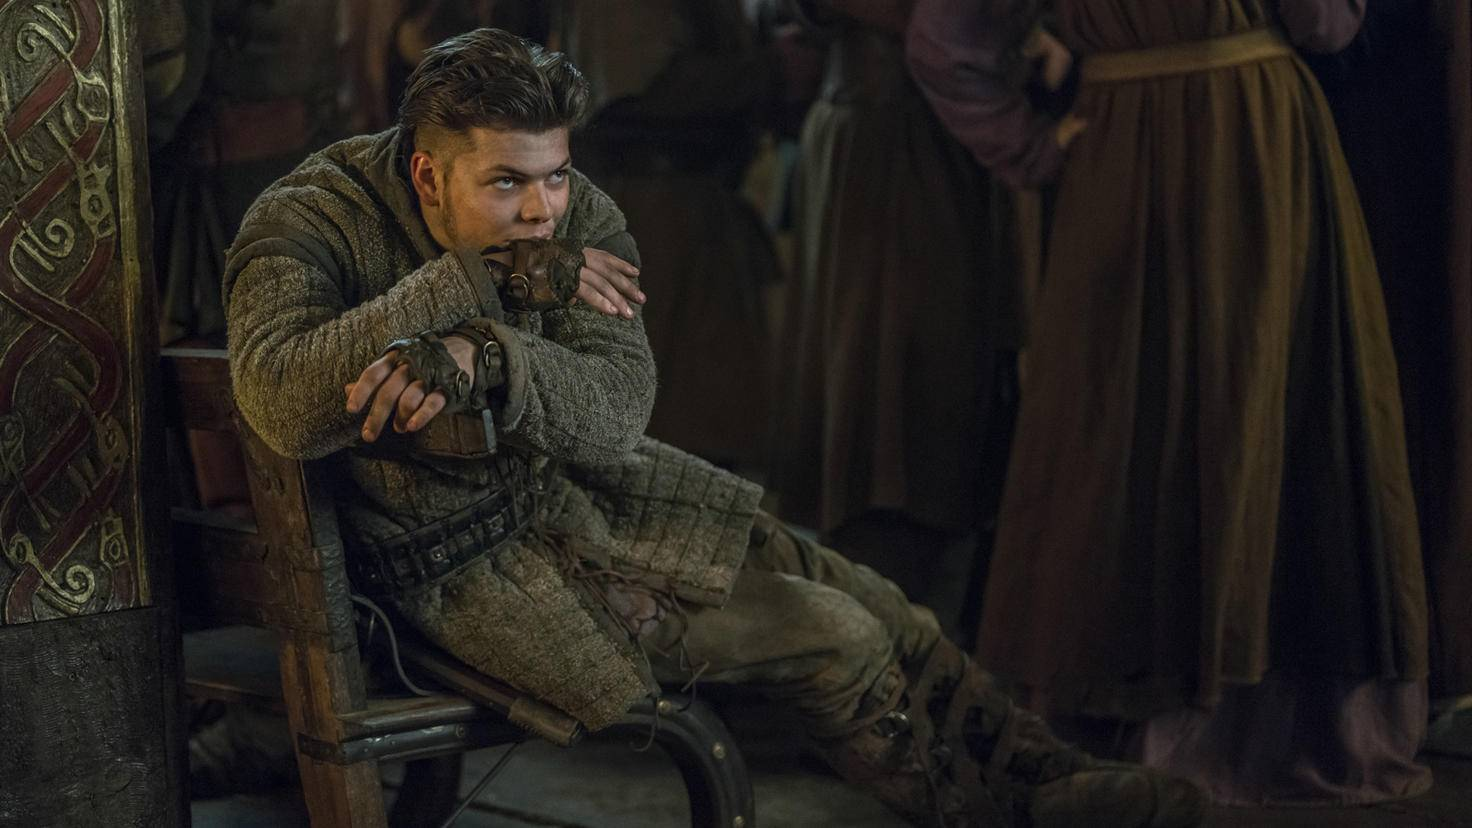 Ivar Staffel 4 Part 2 Vikings